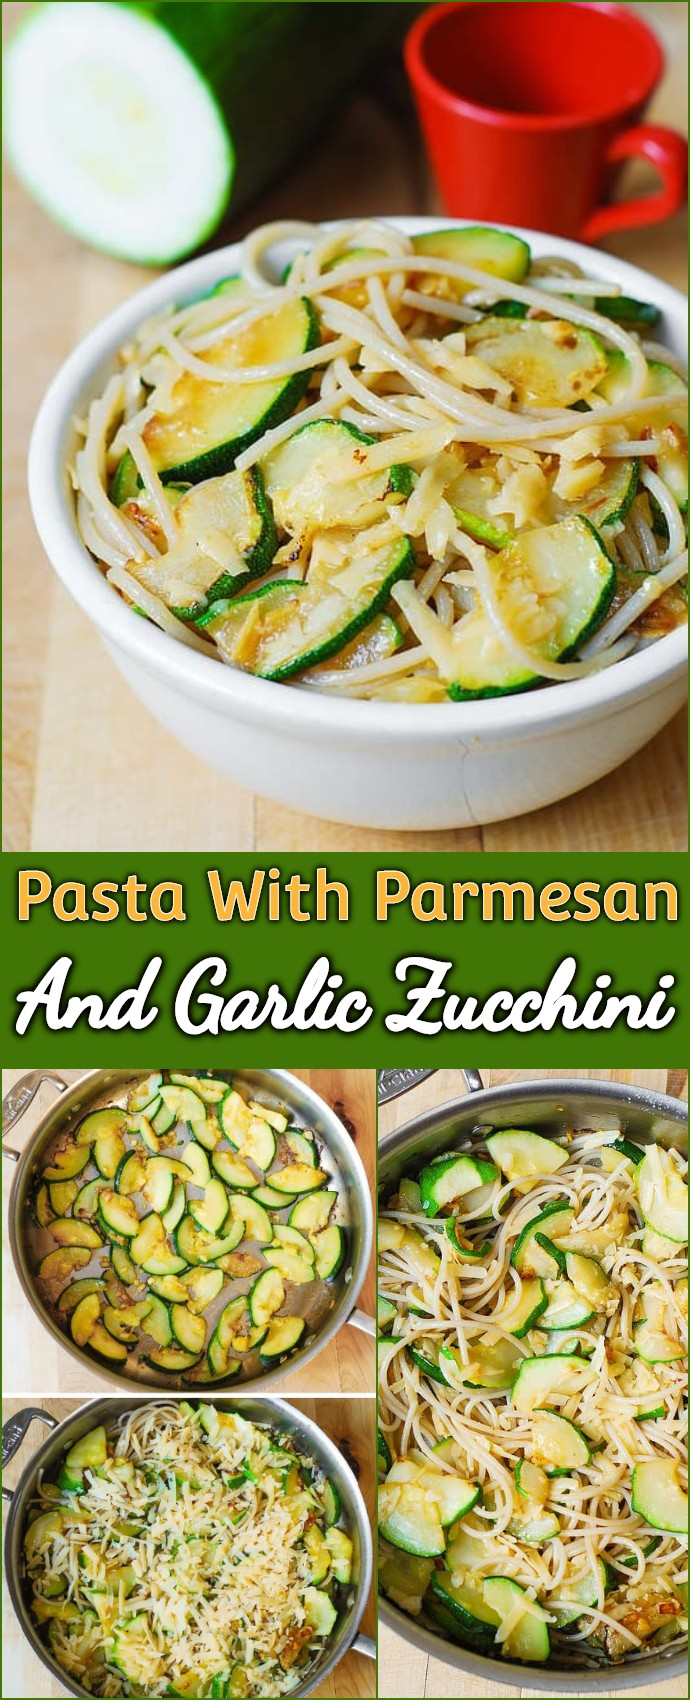 Pasta With Parmesan And Garlic Zucchini